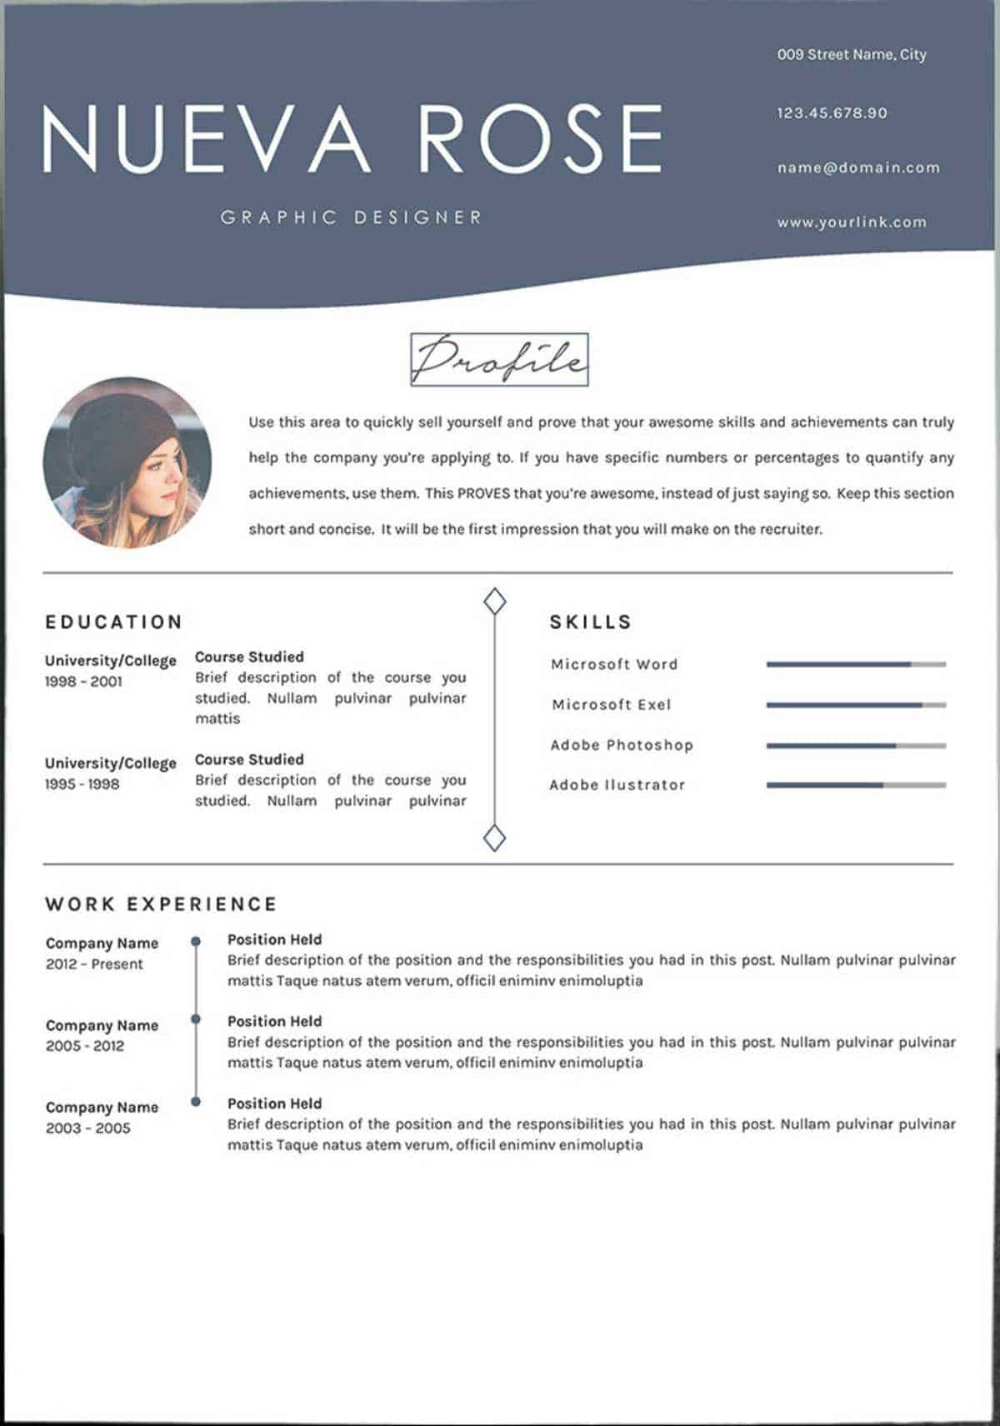 Resume Templates Download Google Docs (4) TEMPLATES